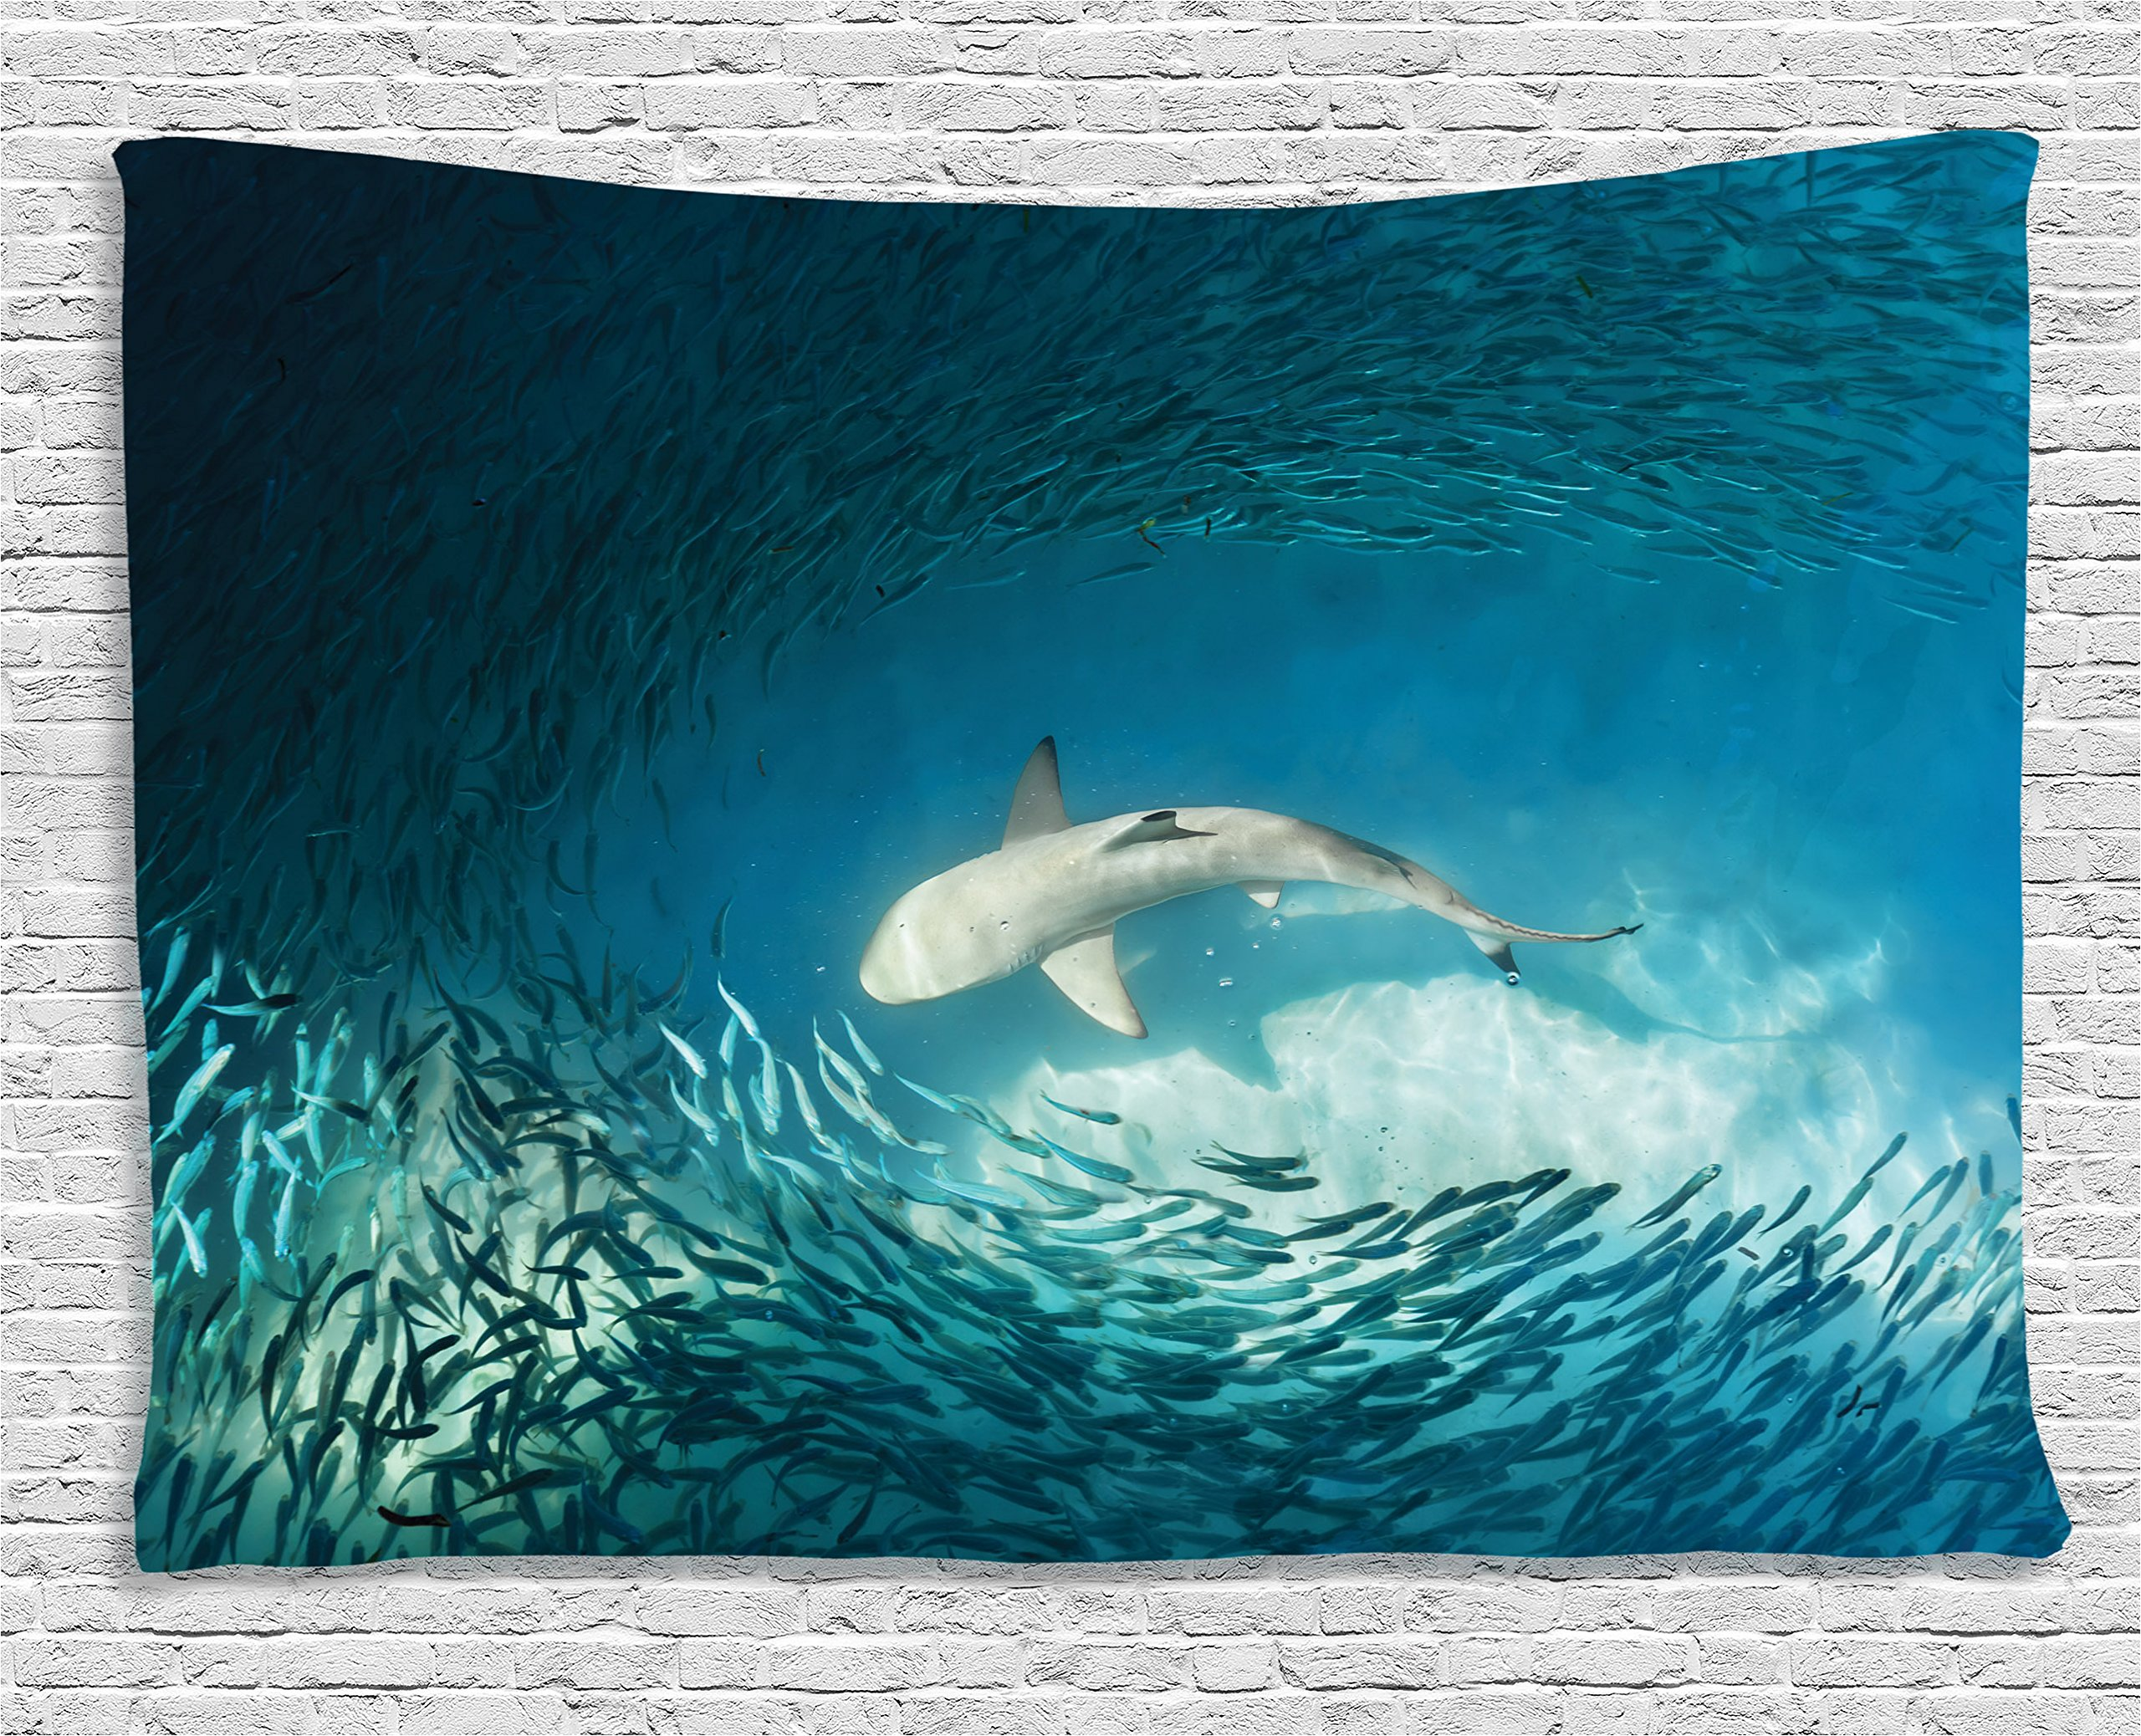 Ambesonne Sea Animals Decor Taapestry, Shark and Small Fish in Ocean Wilderness Waterscape Wildlife Nature Theme Picture, Wall Hanging for Bedroom Living Room Dorm, 80 W X 60 L, Teal and Beige